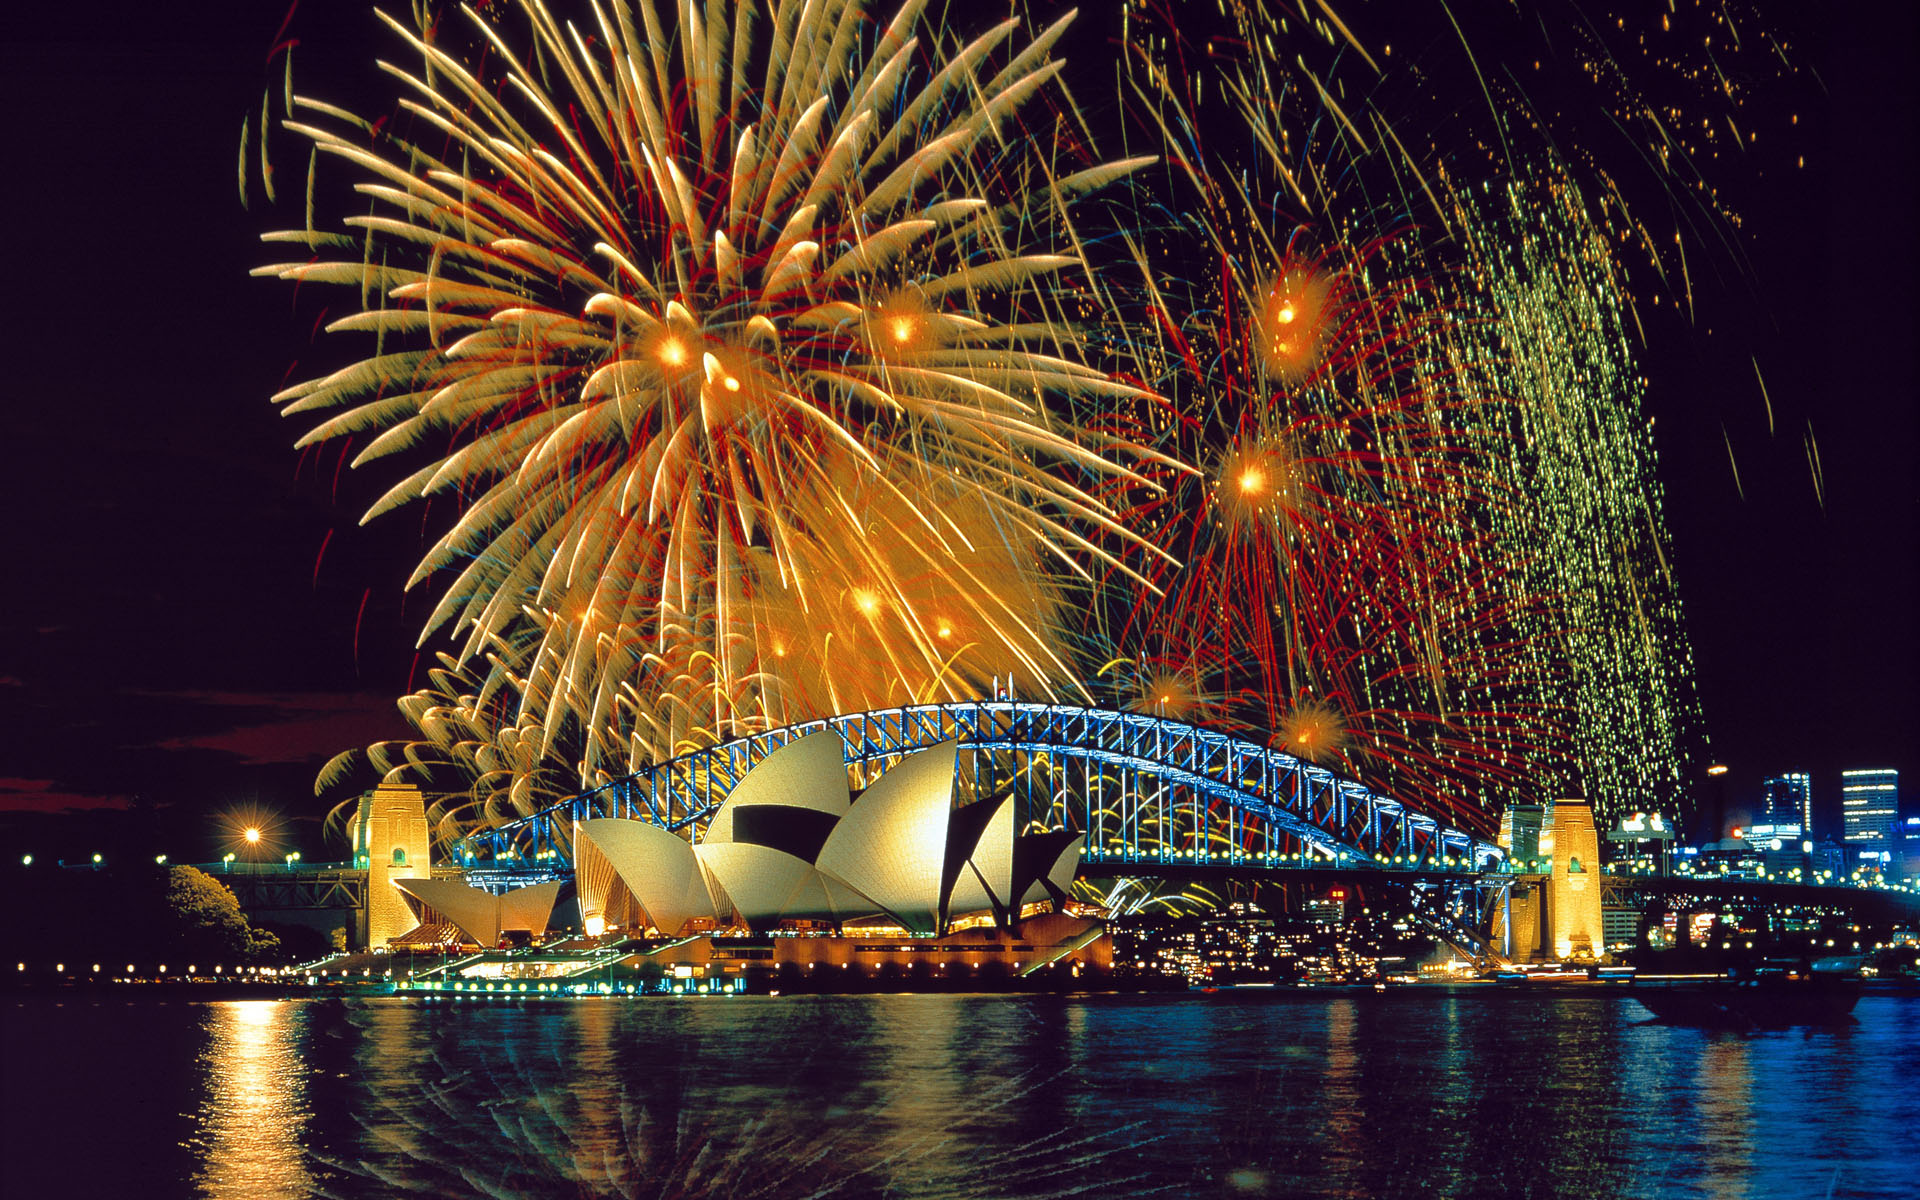 Wallpapers Download Sydney Fireworks 227.97 Kb